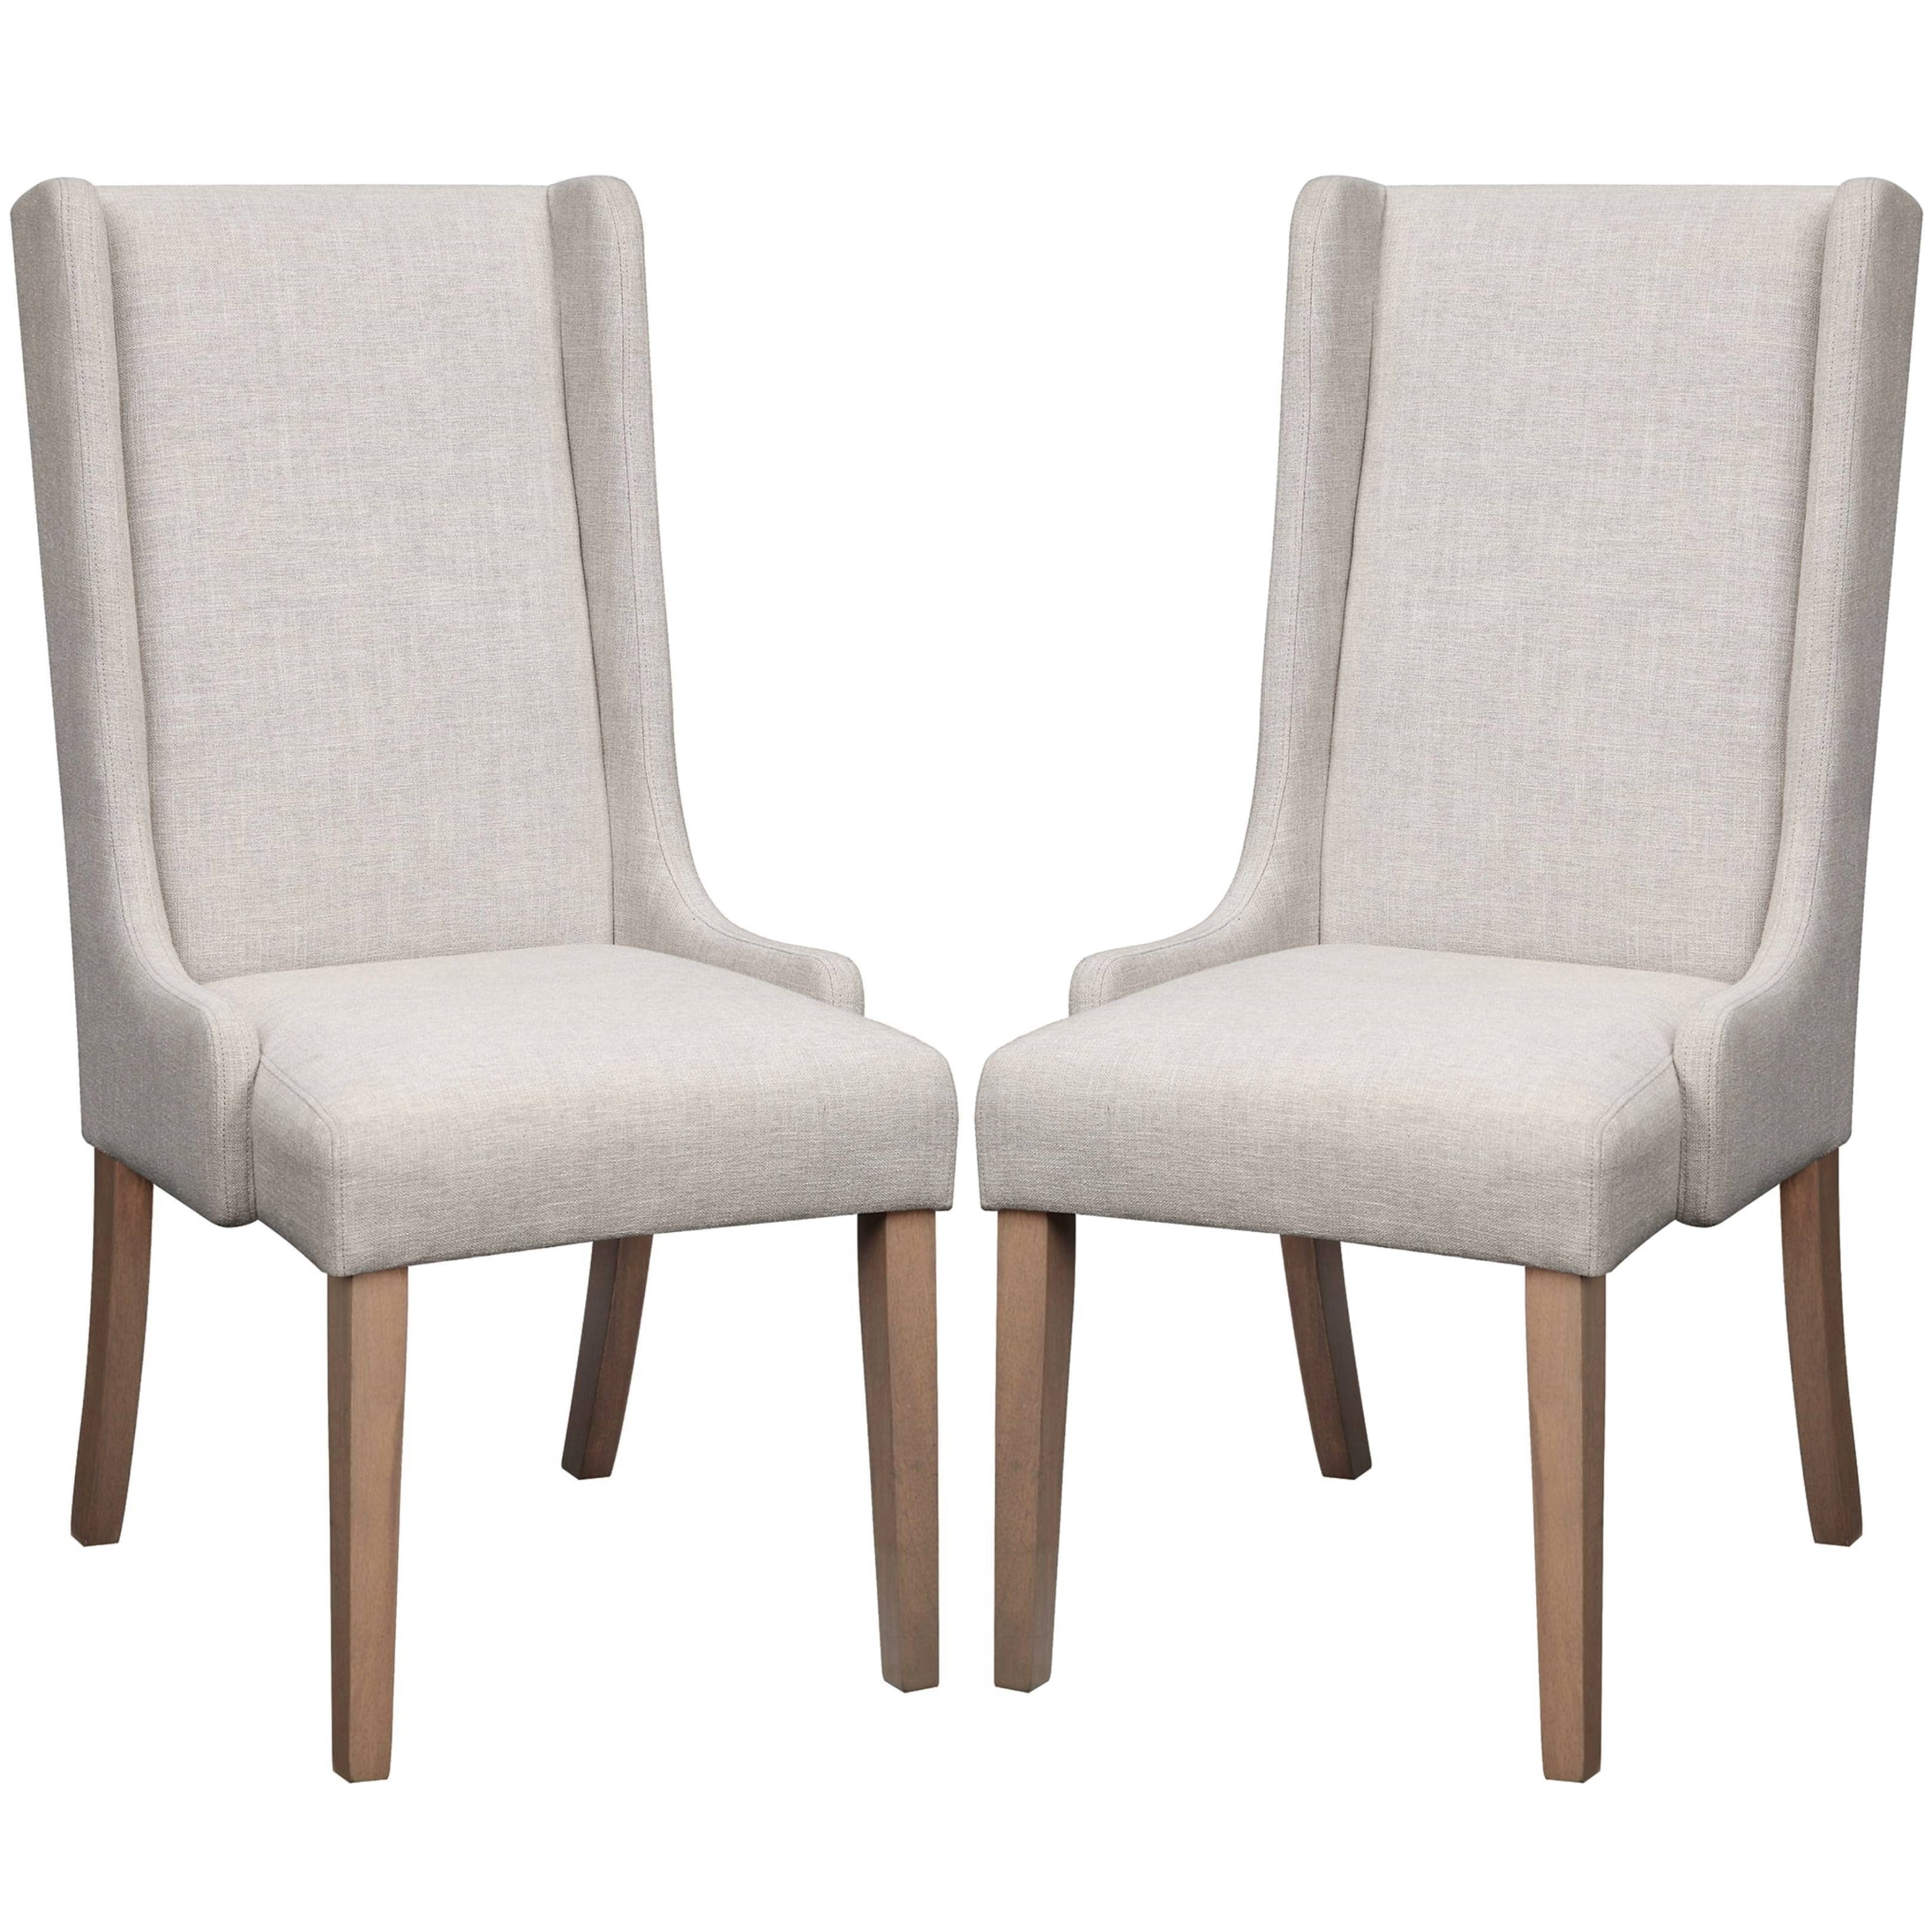 A Line Furniture Wing Back Design Beige Dining Chairs (Set of 2)